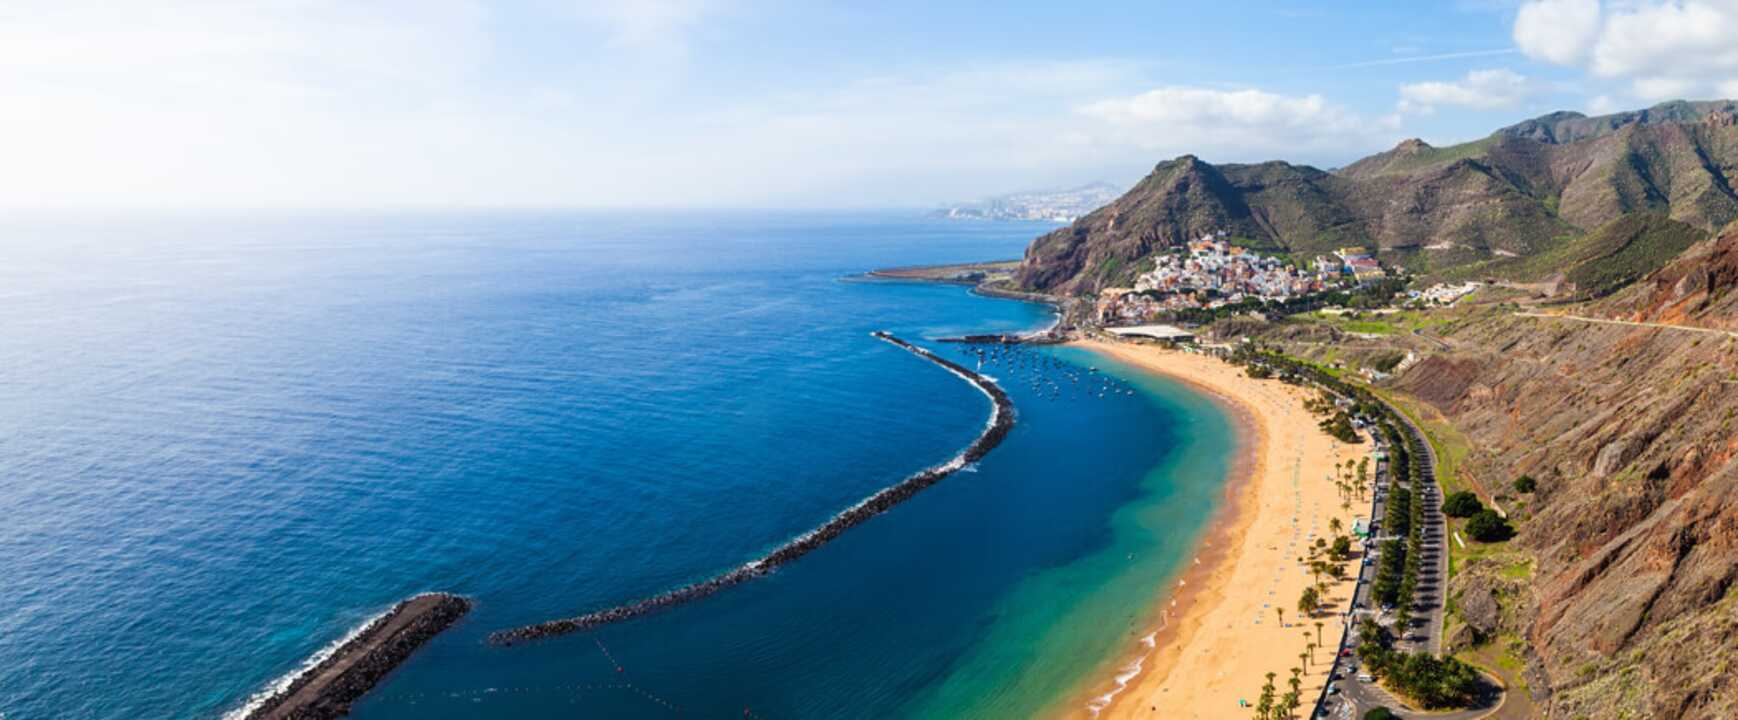 Cheap Canary Islands Holidays Last Minute Deals On The - 12 safety tips for your tenerife holiday